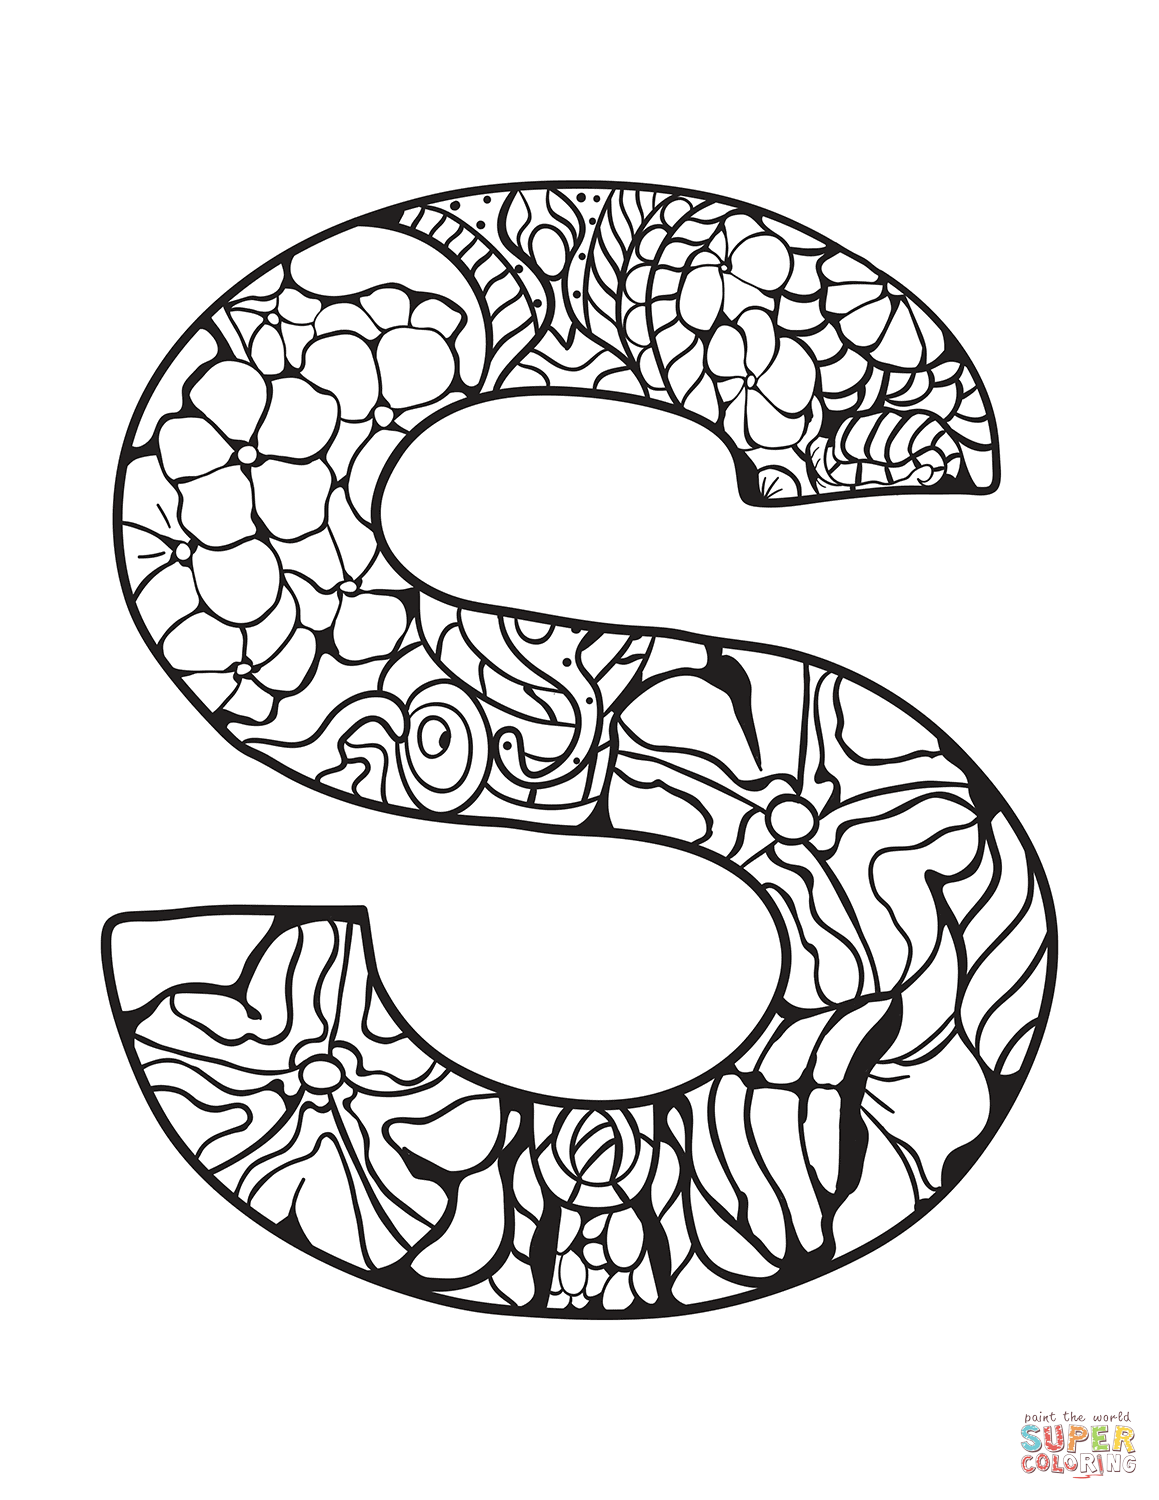 Letter S Zentangle Coloring Page Free Printable Coloring Pages Coloring Pages Alphabet Coloring Pages Alphabet Coloring